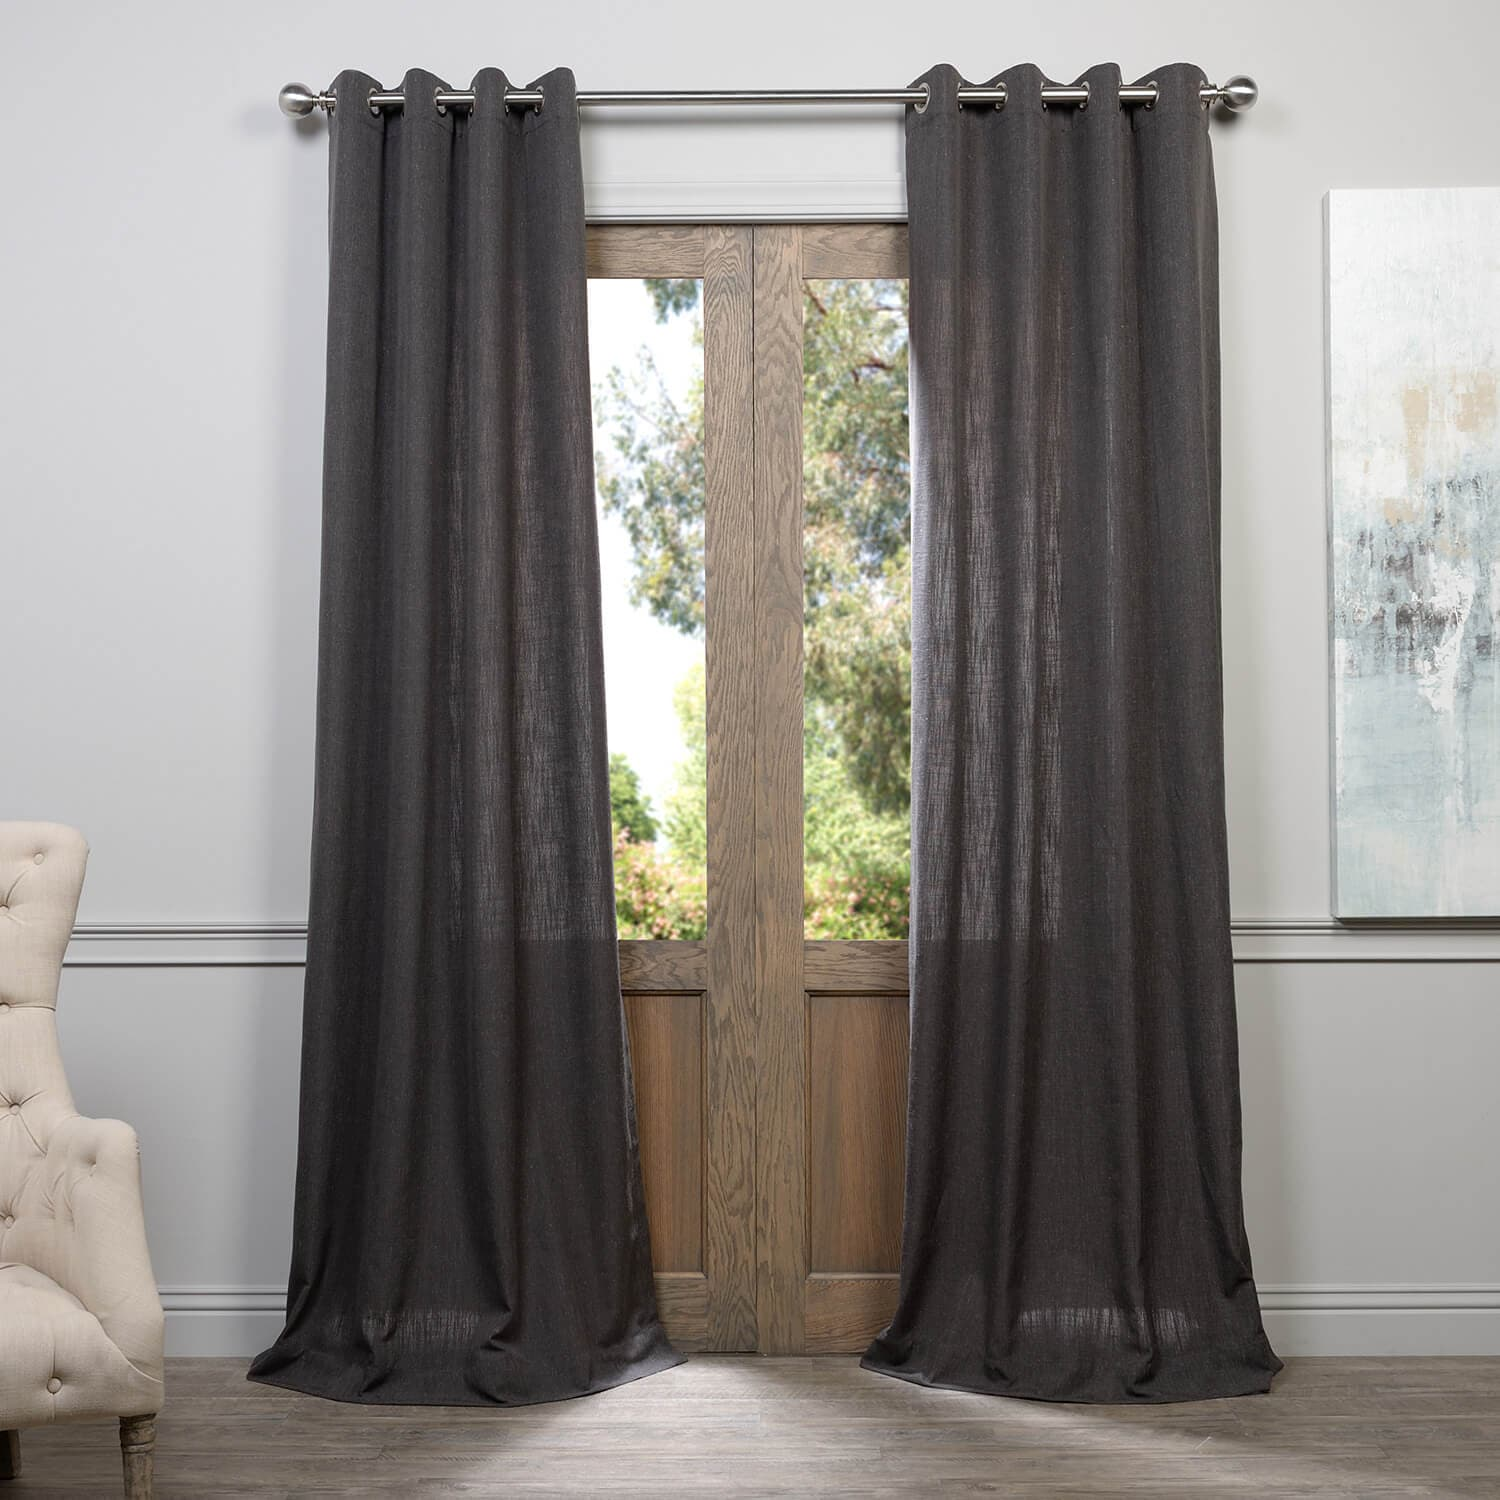 panels faux view grommets in grommet curtains curtain fashions lj home larger silkana grey with silk drapes